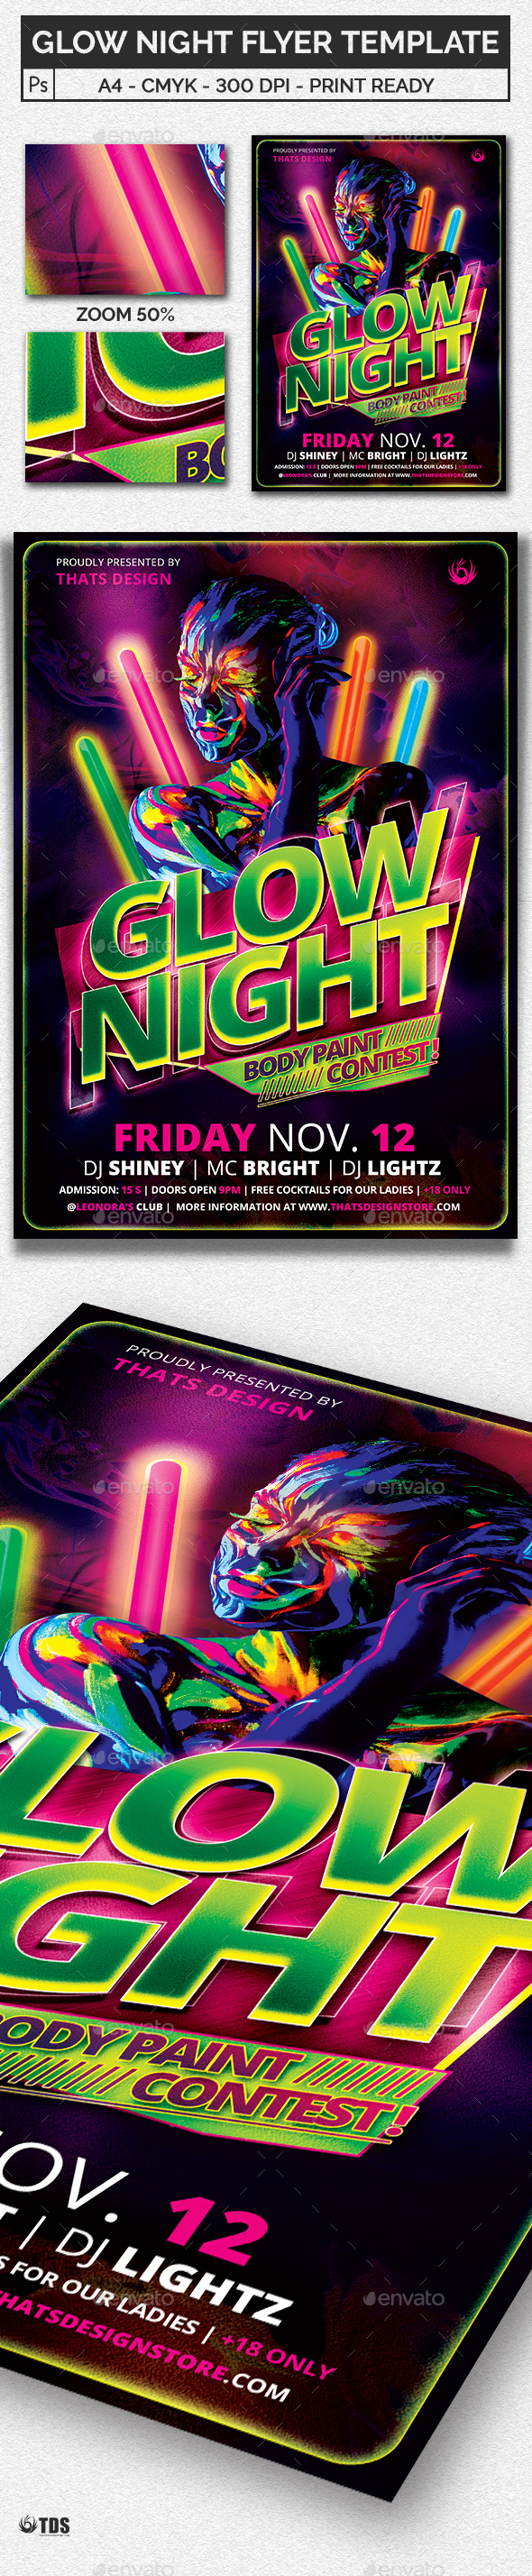 Glow Night Flyer Template - Clubs & Parties Events